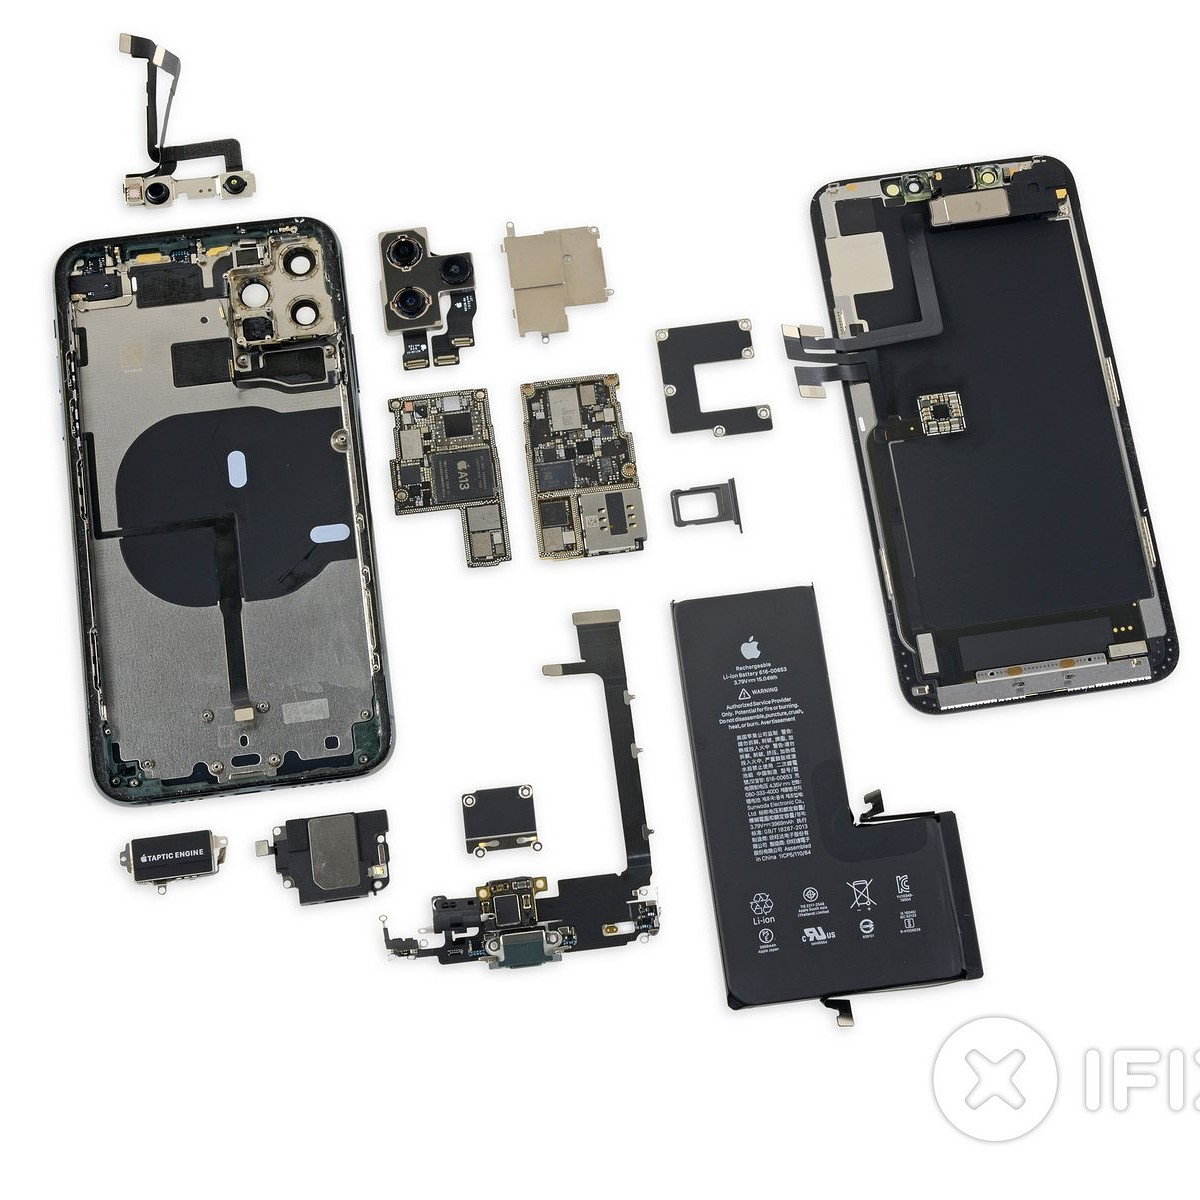 the iphone 11 pro max s the teardown treatment from ifixit